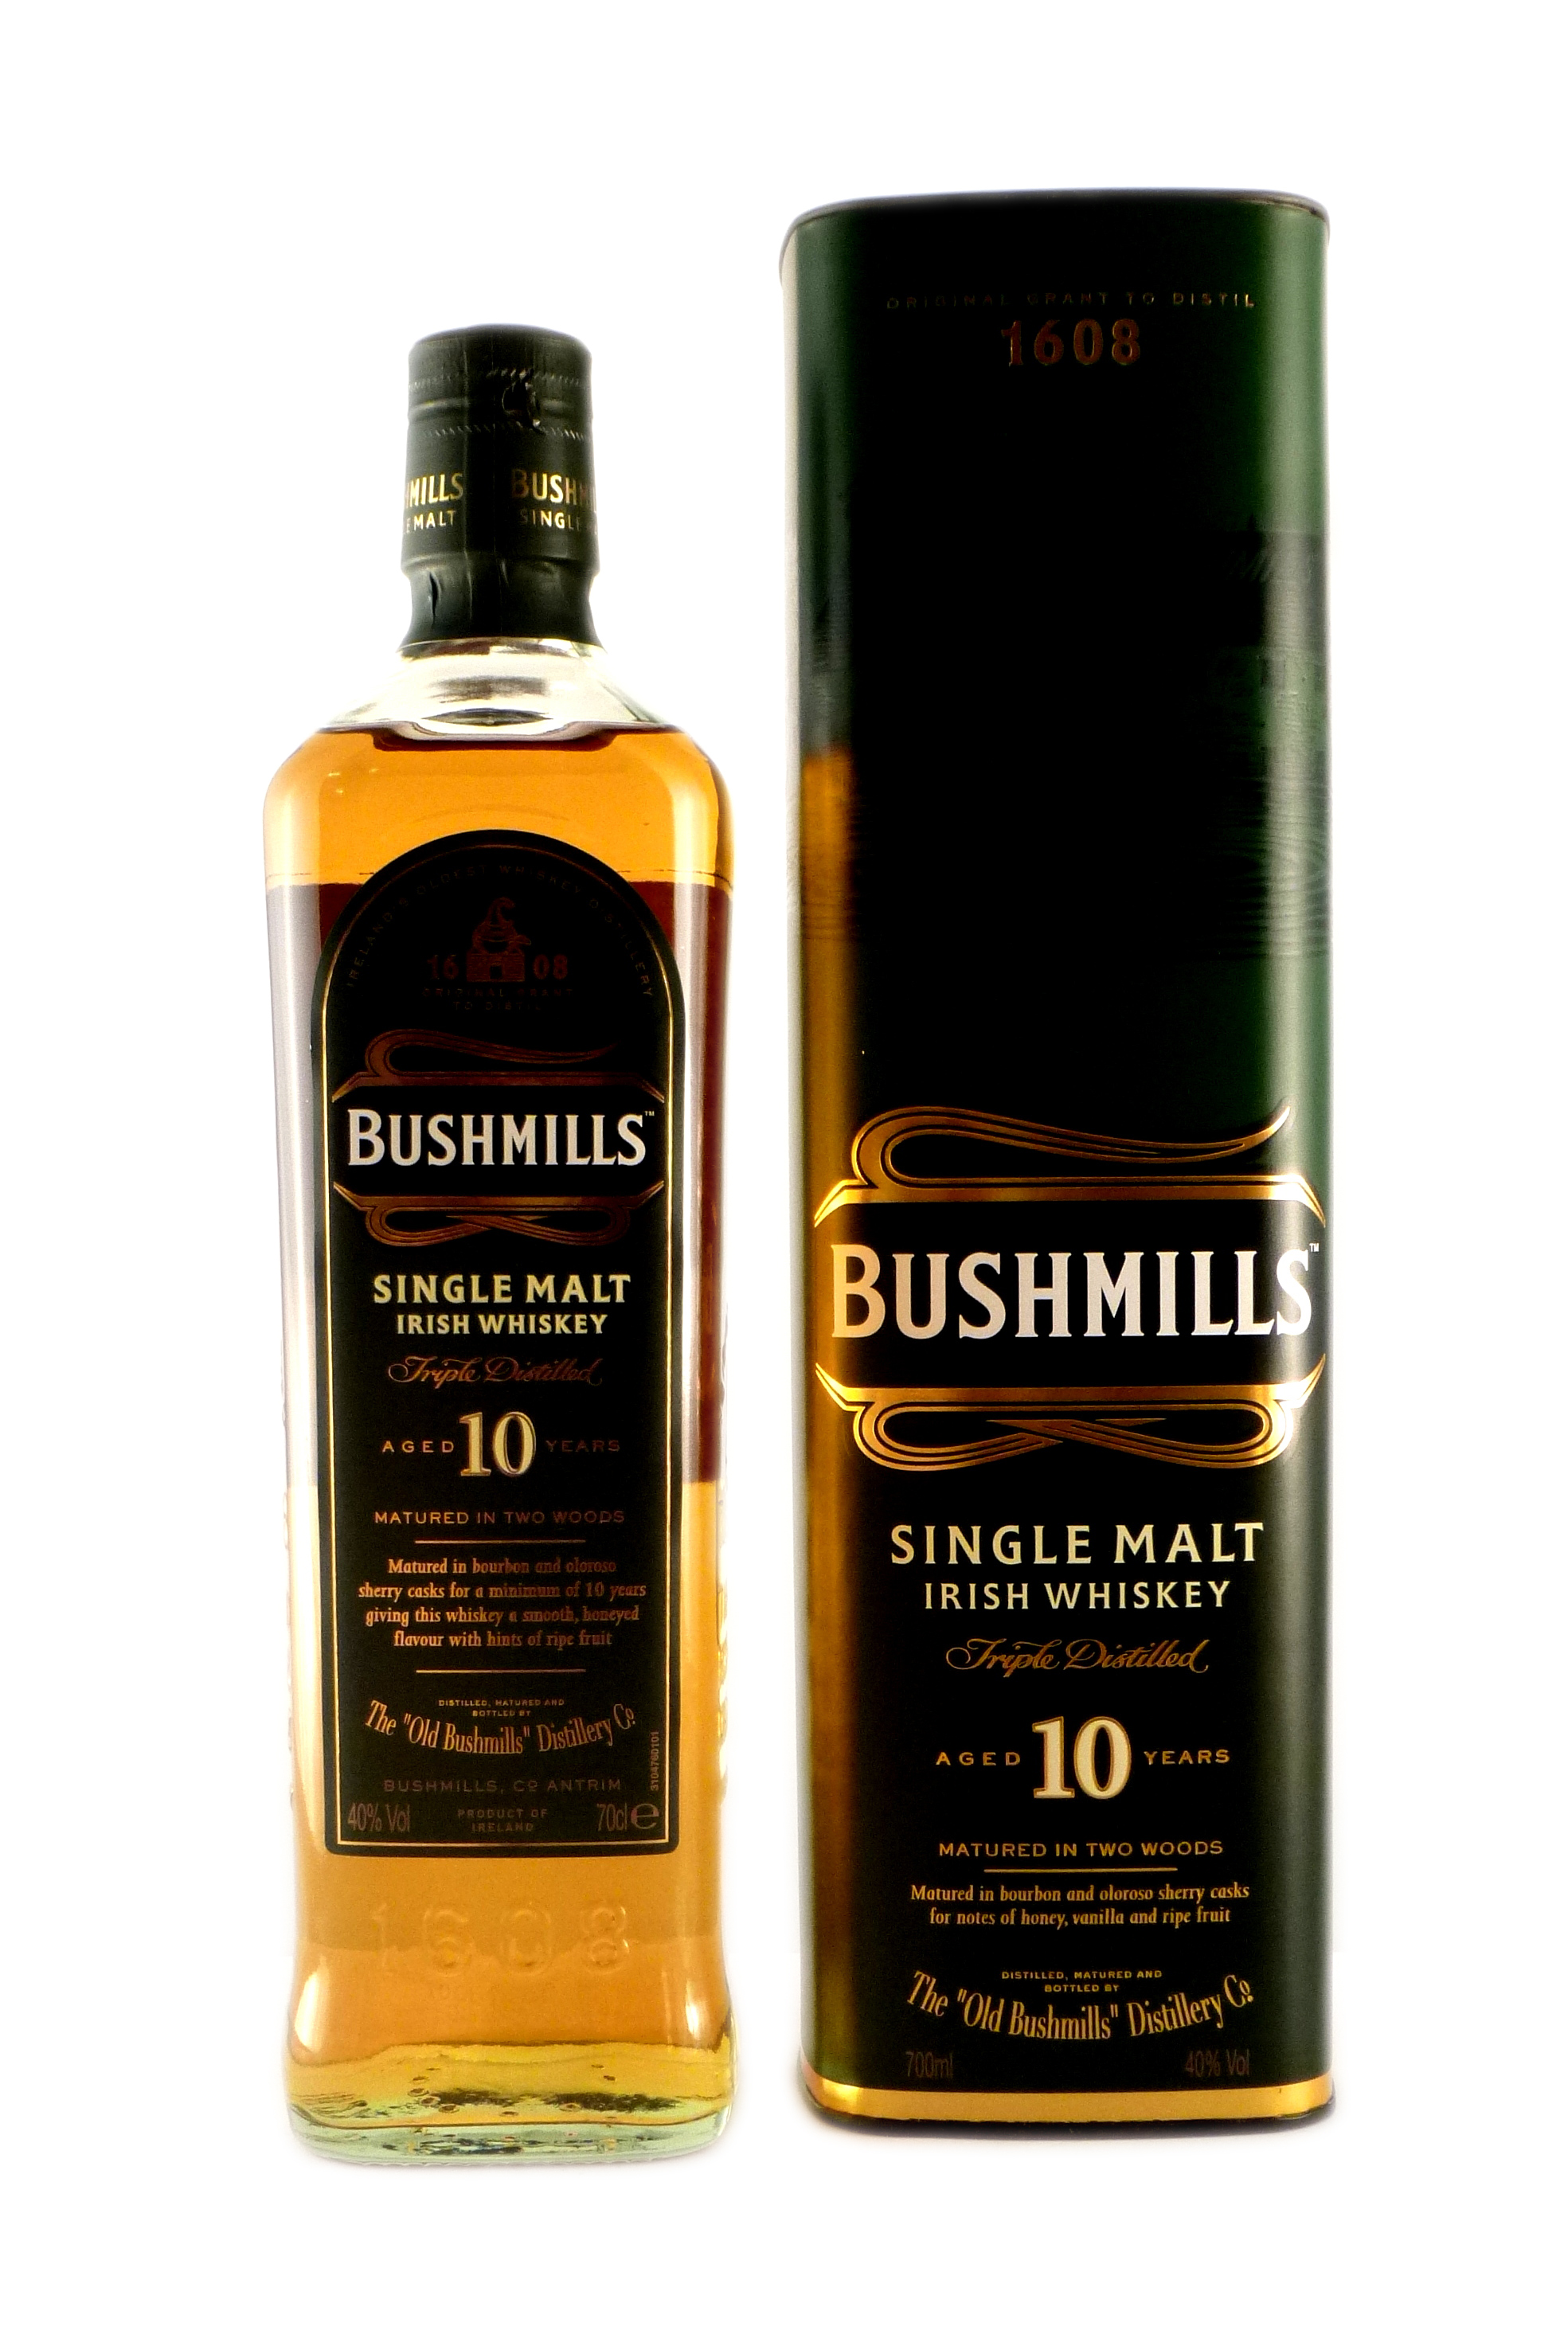 bushmills 10 jahre single malt irish whiskey kaufen ab 21 68 eur im single malt irish whiskey. Black Bedroom Furniture Sets. Home Design Ideas